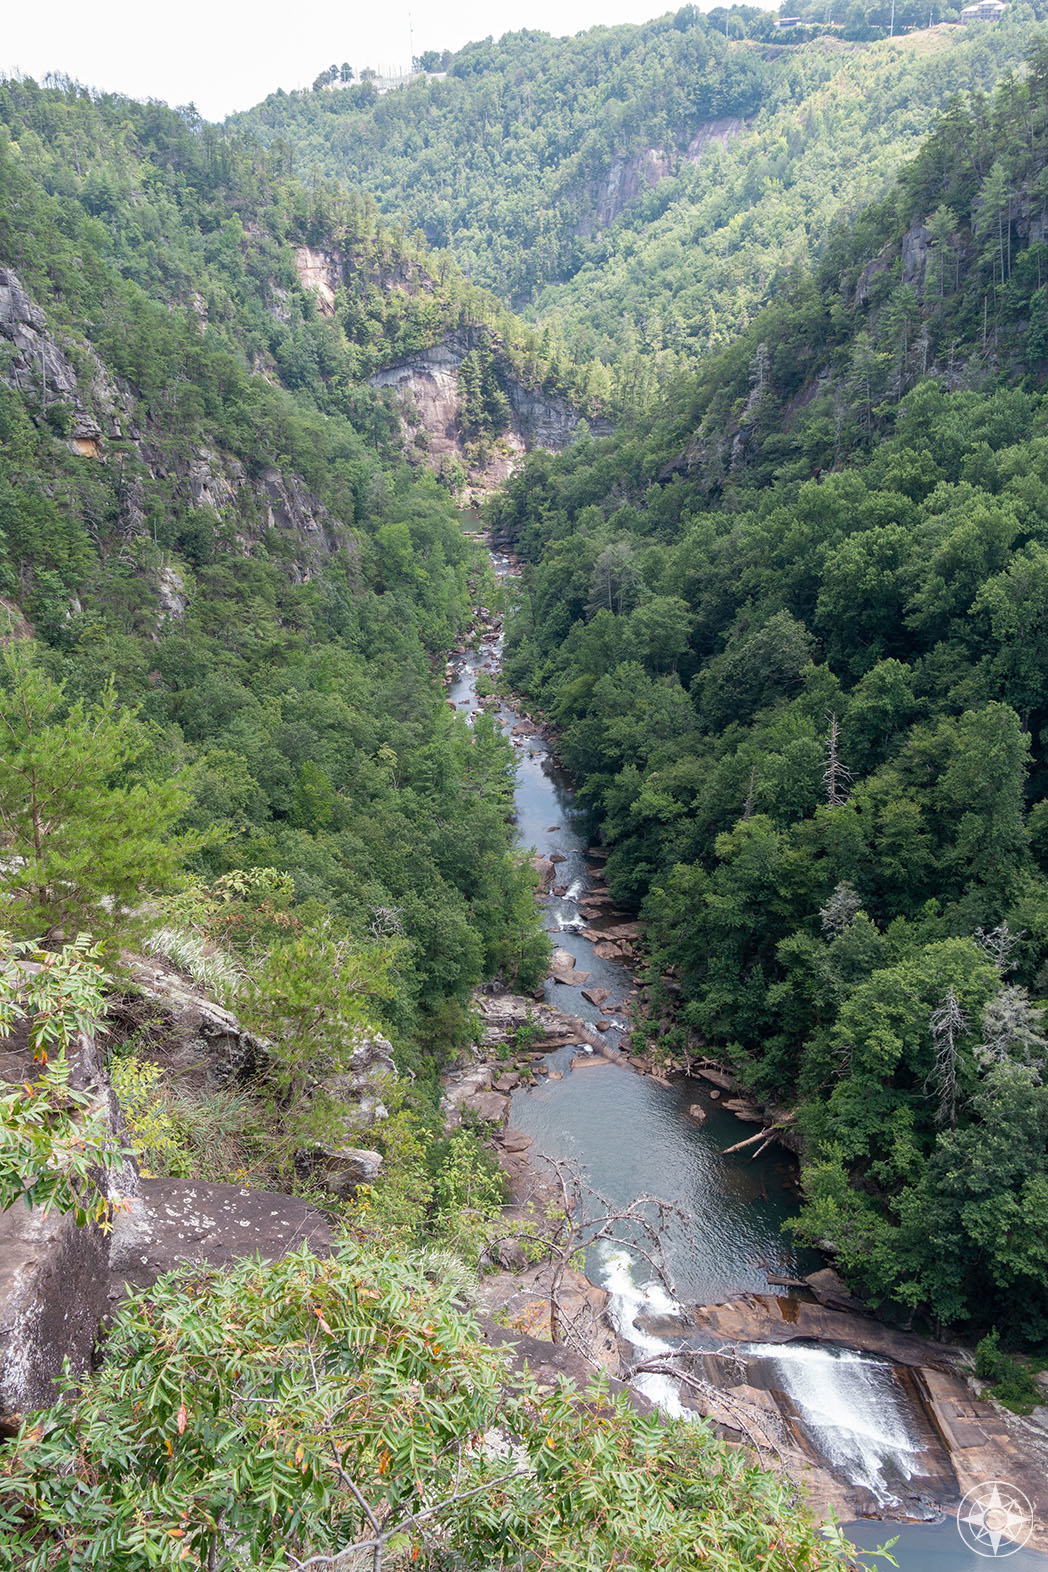 Oceana Falls and the Tallulah Gorge stretch before the Horseshoe Bend hides the river run